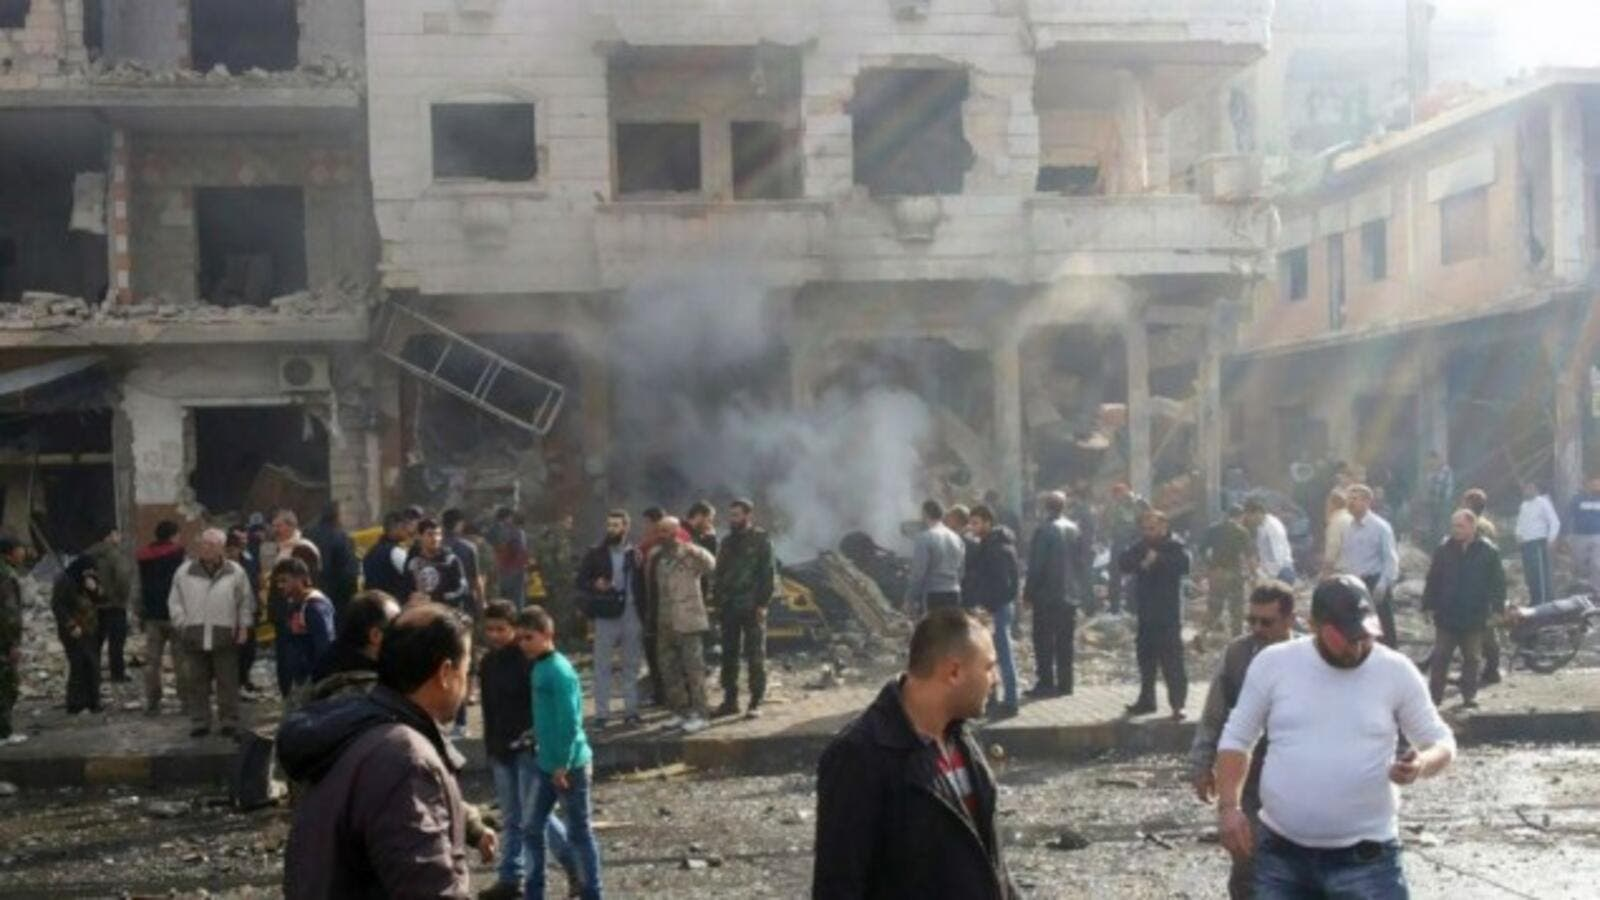 In this photo released by the Syrian official news agency SANA, residents gather at the scene where two blasts exploded in the pro-government neighborhood of Zahraa, in Homs province, Syria, Sunday, Feb. 21, 2016. (AFP/File)